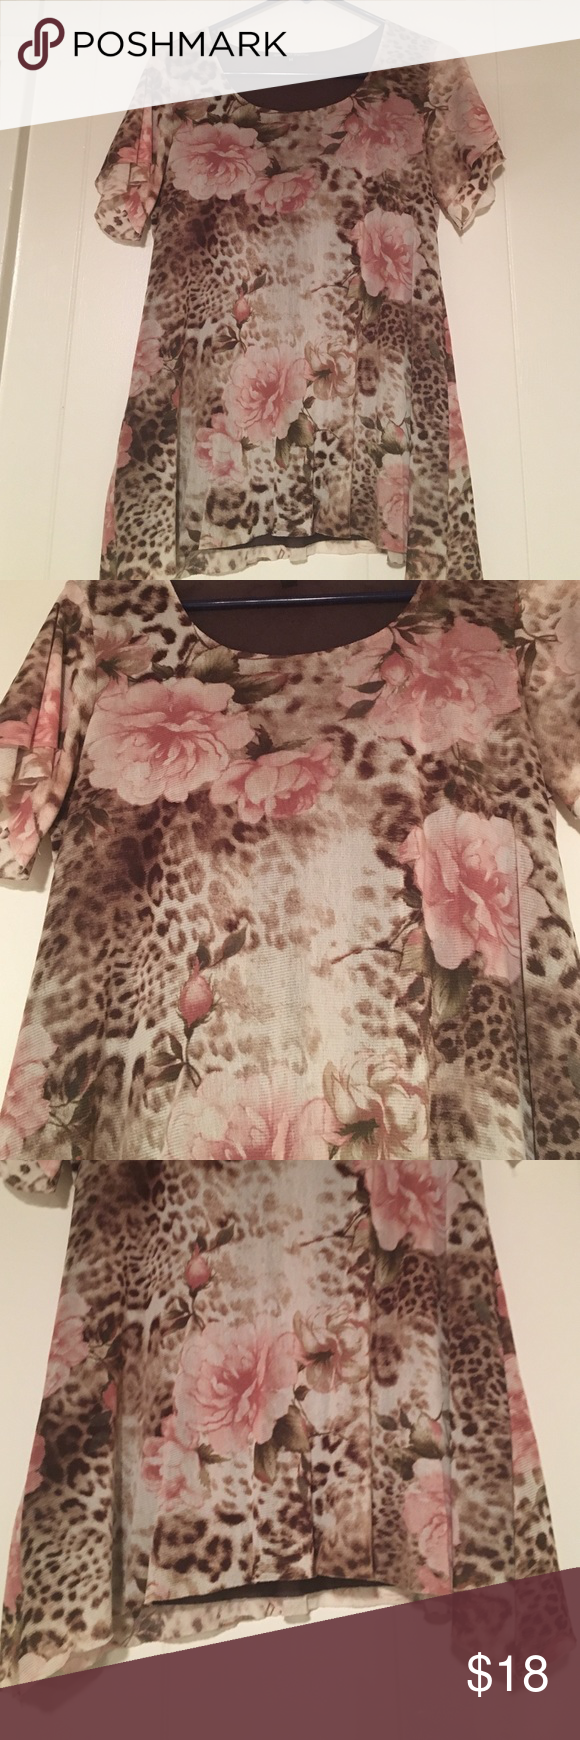 Earthy colored flowered blouse Earthy color with pink roses with cheetah prints throughout. Longer sides. Light flowy material. Short sleeve. Excellent condition. Not anthropologie Anthropologie Tops